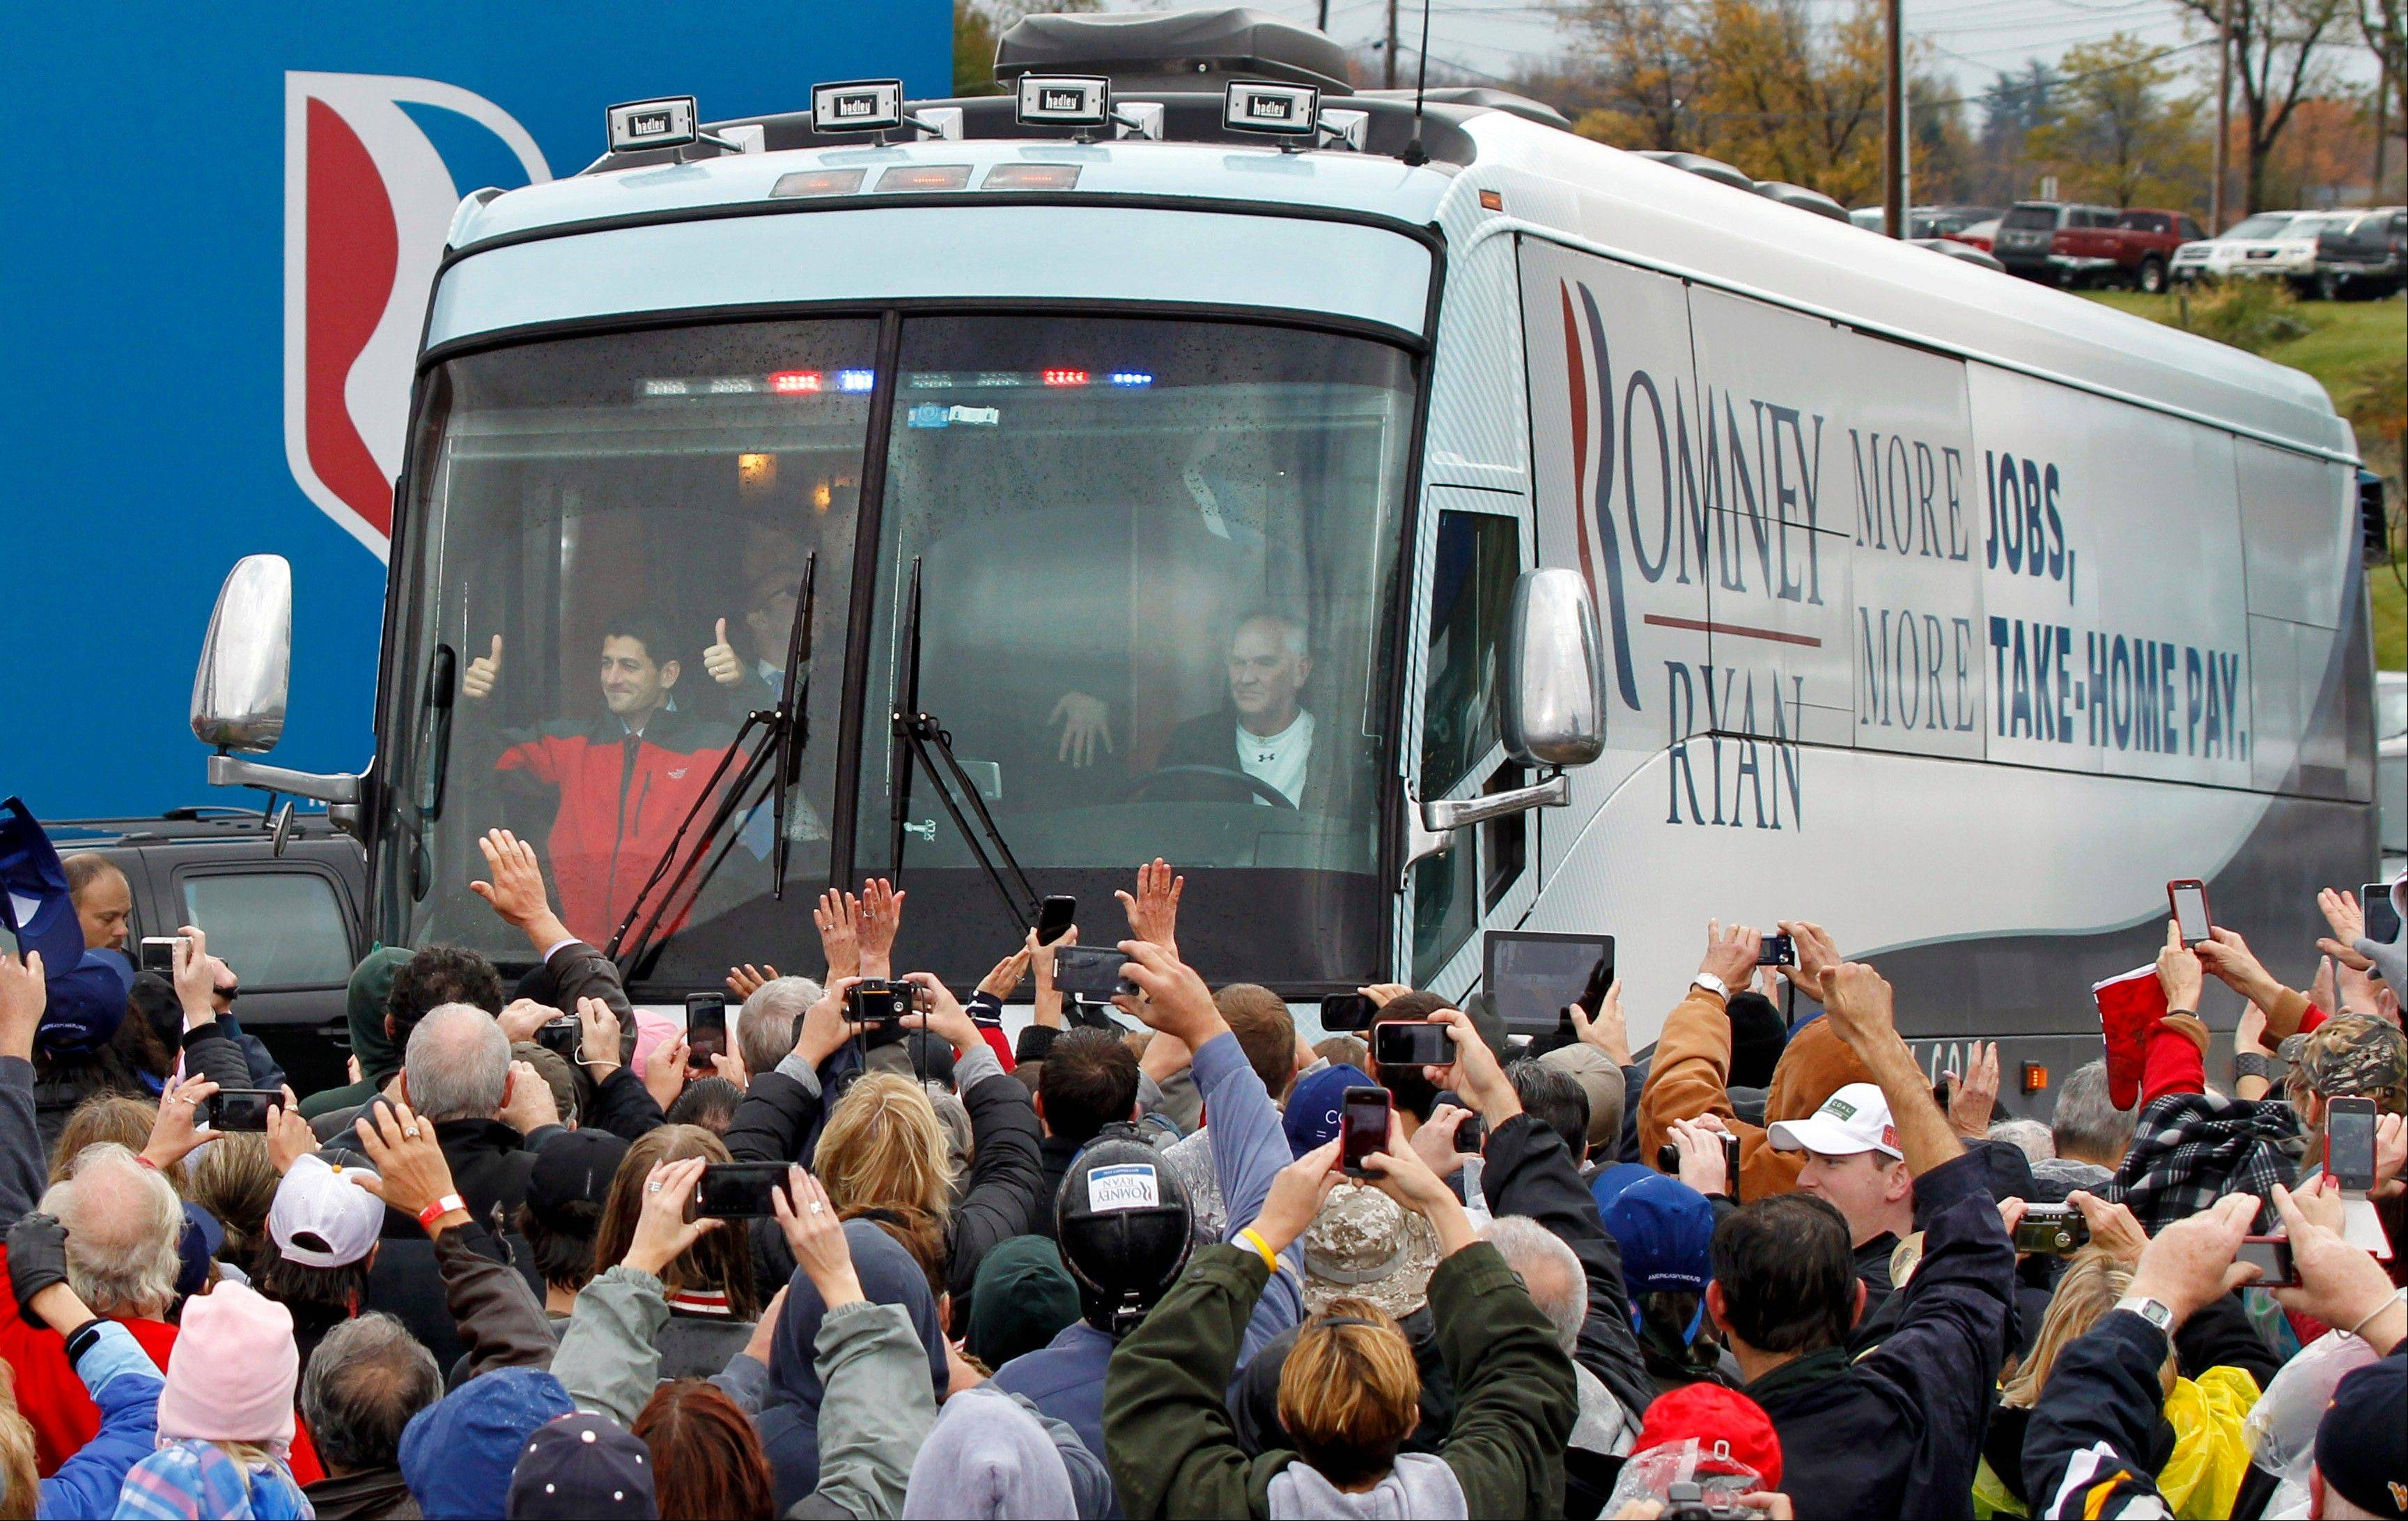 Republican vice presidential candidate, Wisconsin Rep. Paul Ryan, left in front of bus, gives a thumbs-up to supporters as he arrives Saturday for a campaign rally at the Valley View Campgrounds in Belmont, Ohio.